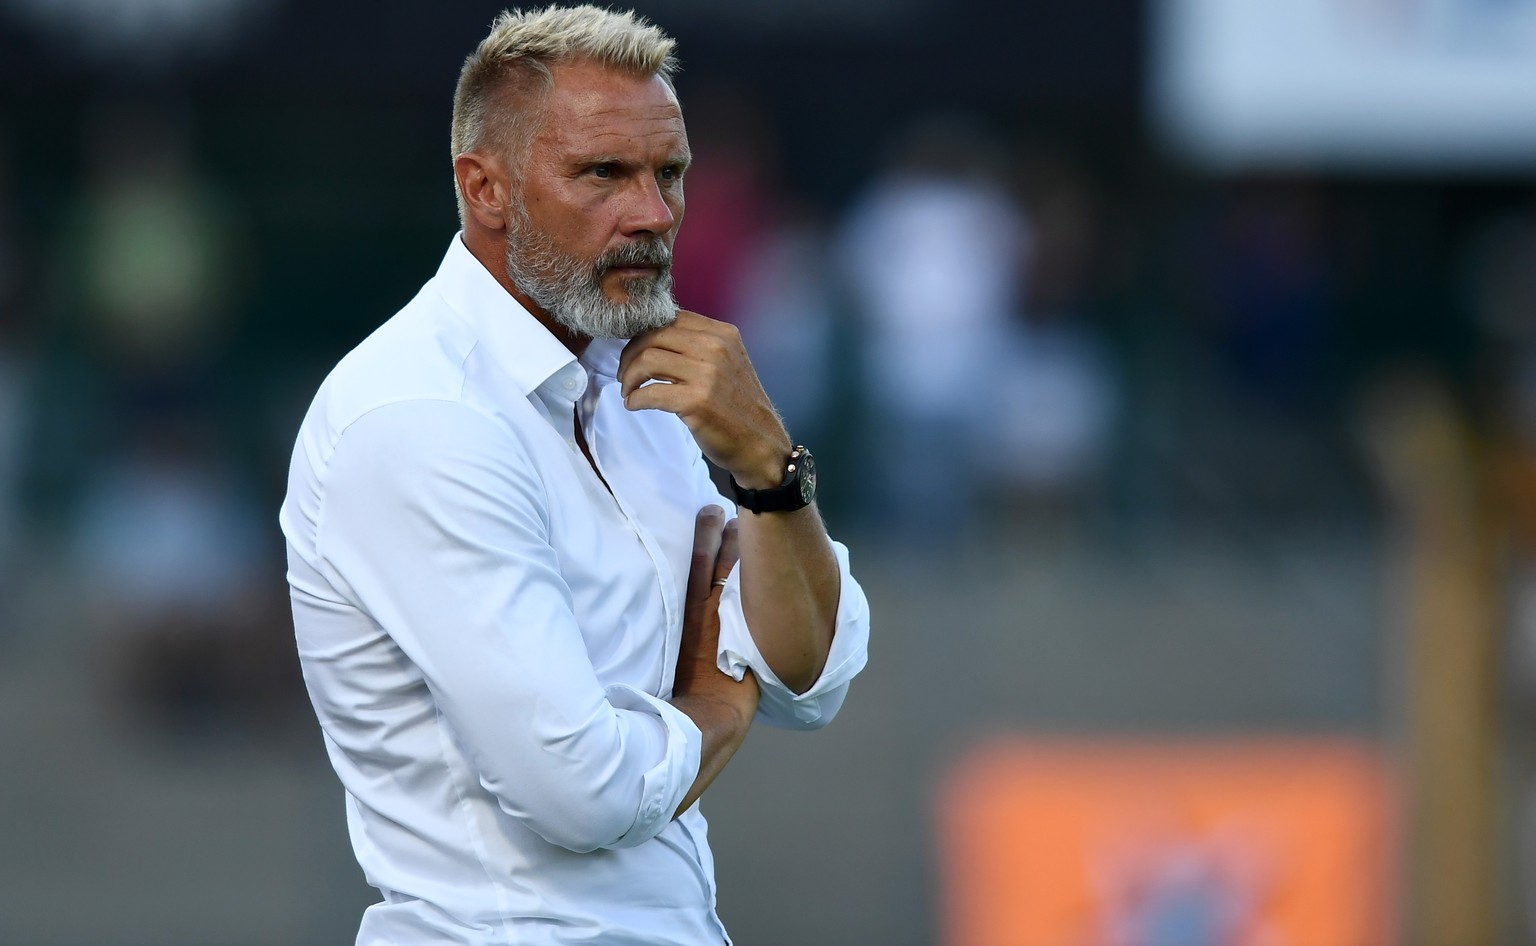 Grasshopper's coach Thorsten Fink during the Super League soccer match FC Lugano against Grasshopper Club Zuerich, at the Cornaredo stadium in Lugano, Saturday, August 11, 2018. (KEYSTONE/Ti-Press/Gabriele Putzu)